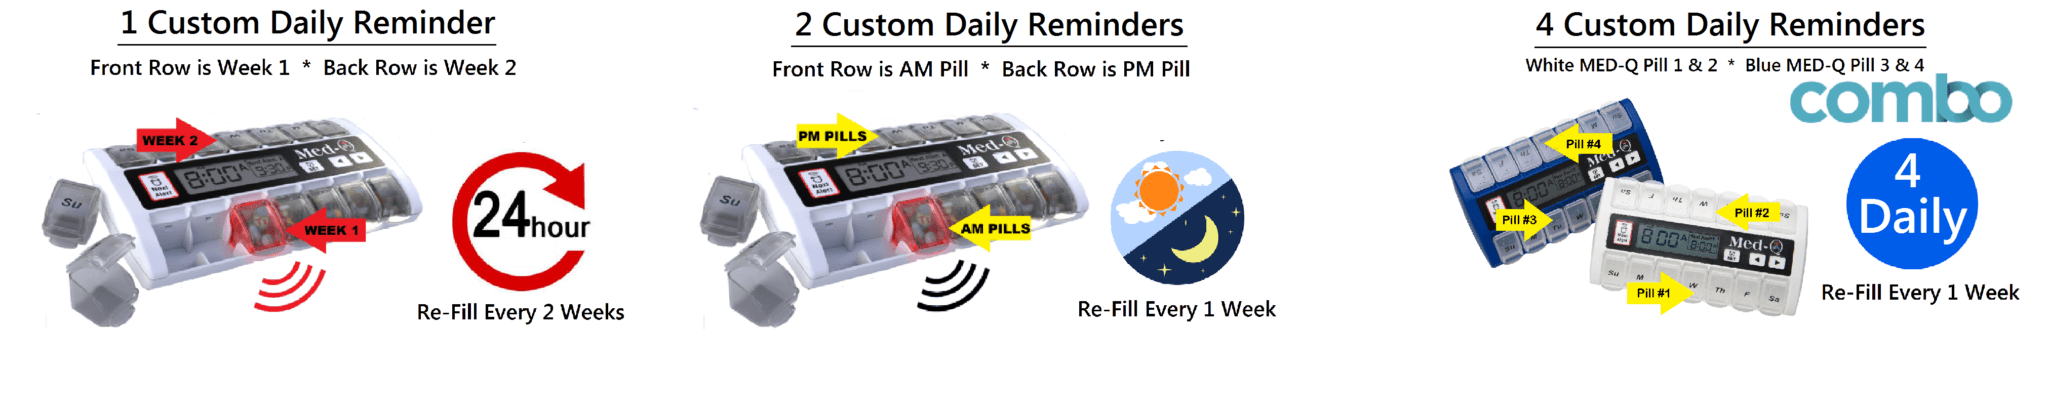 best medication reminder alalrm